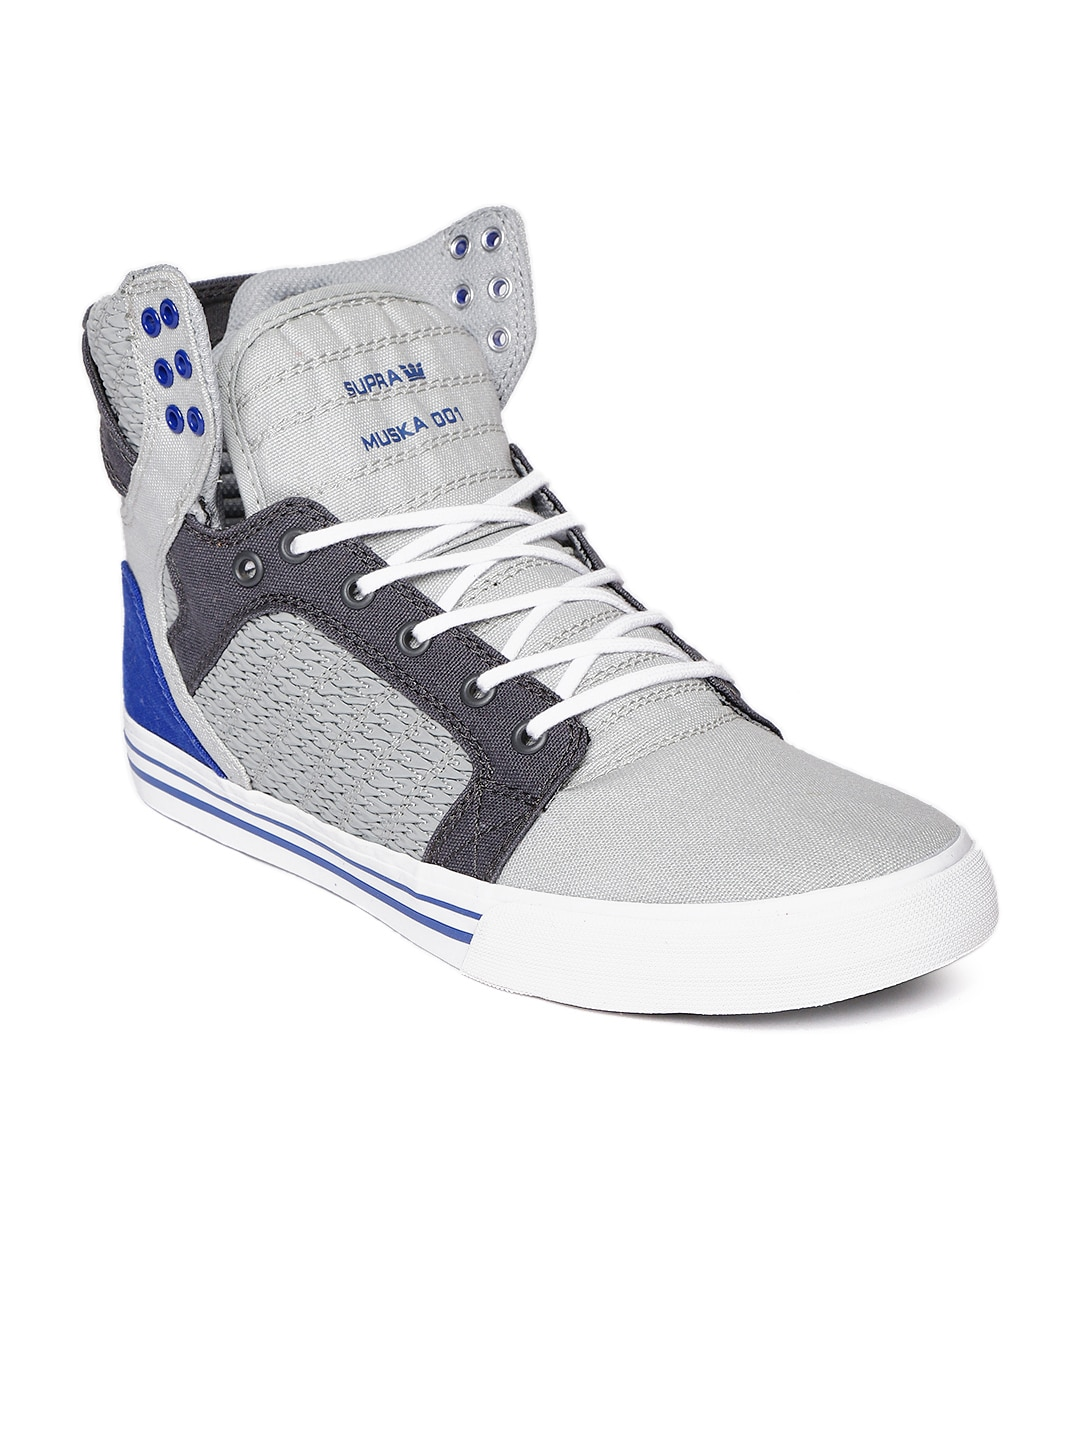 a6c3f8639998 Supra Shoes - Buy Supra Shoes   Sneakers Online in India